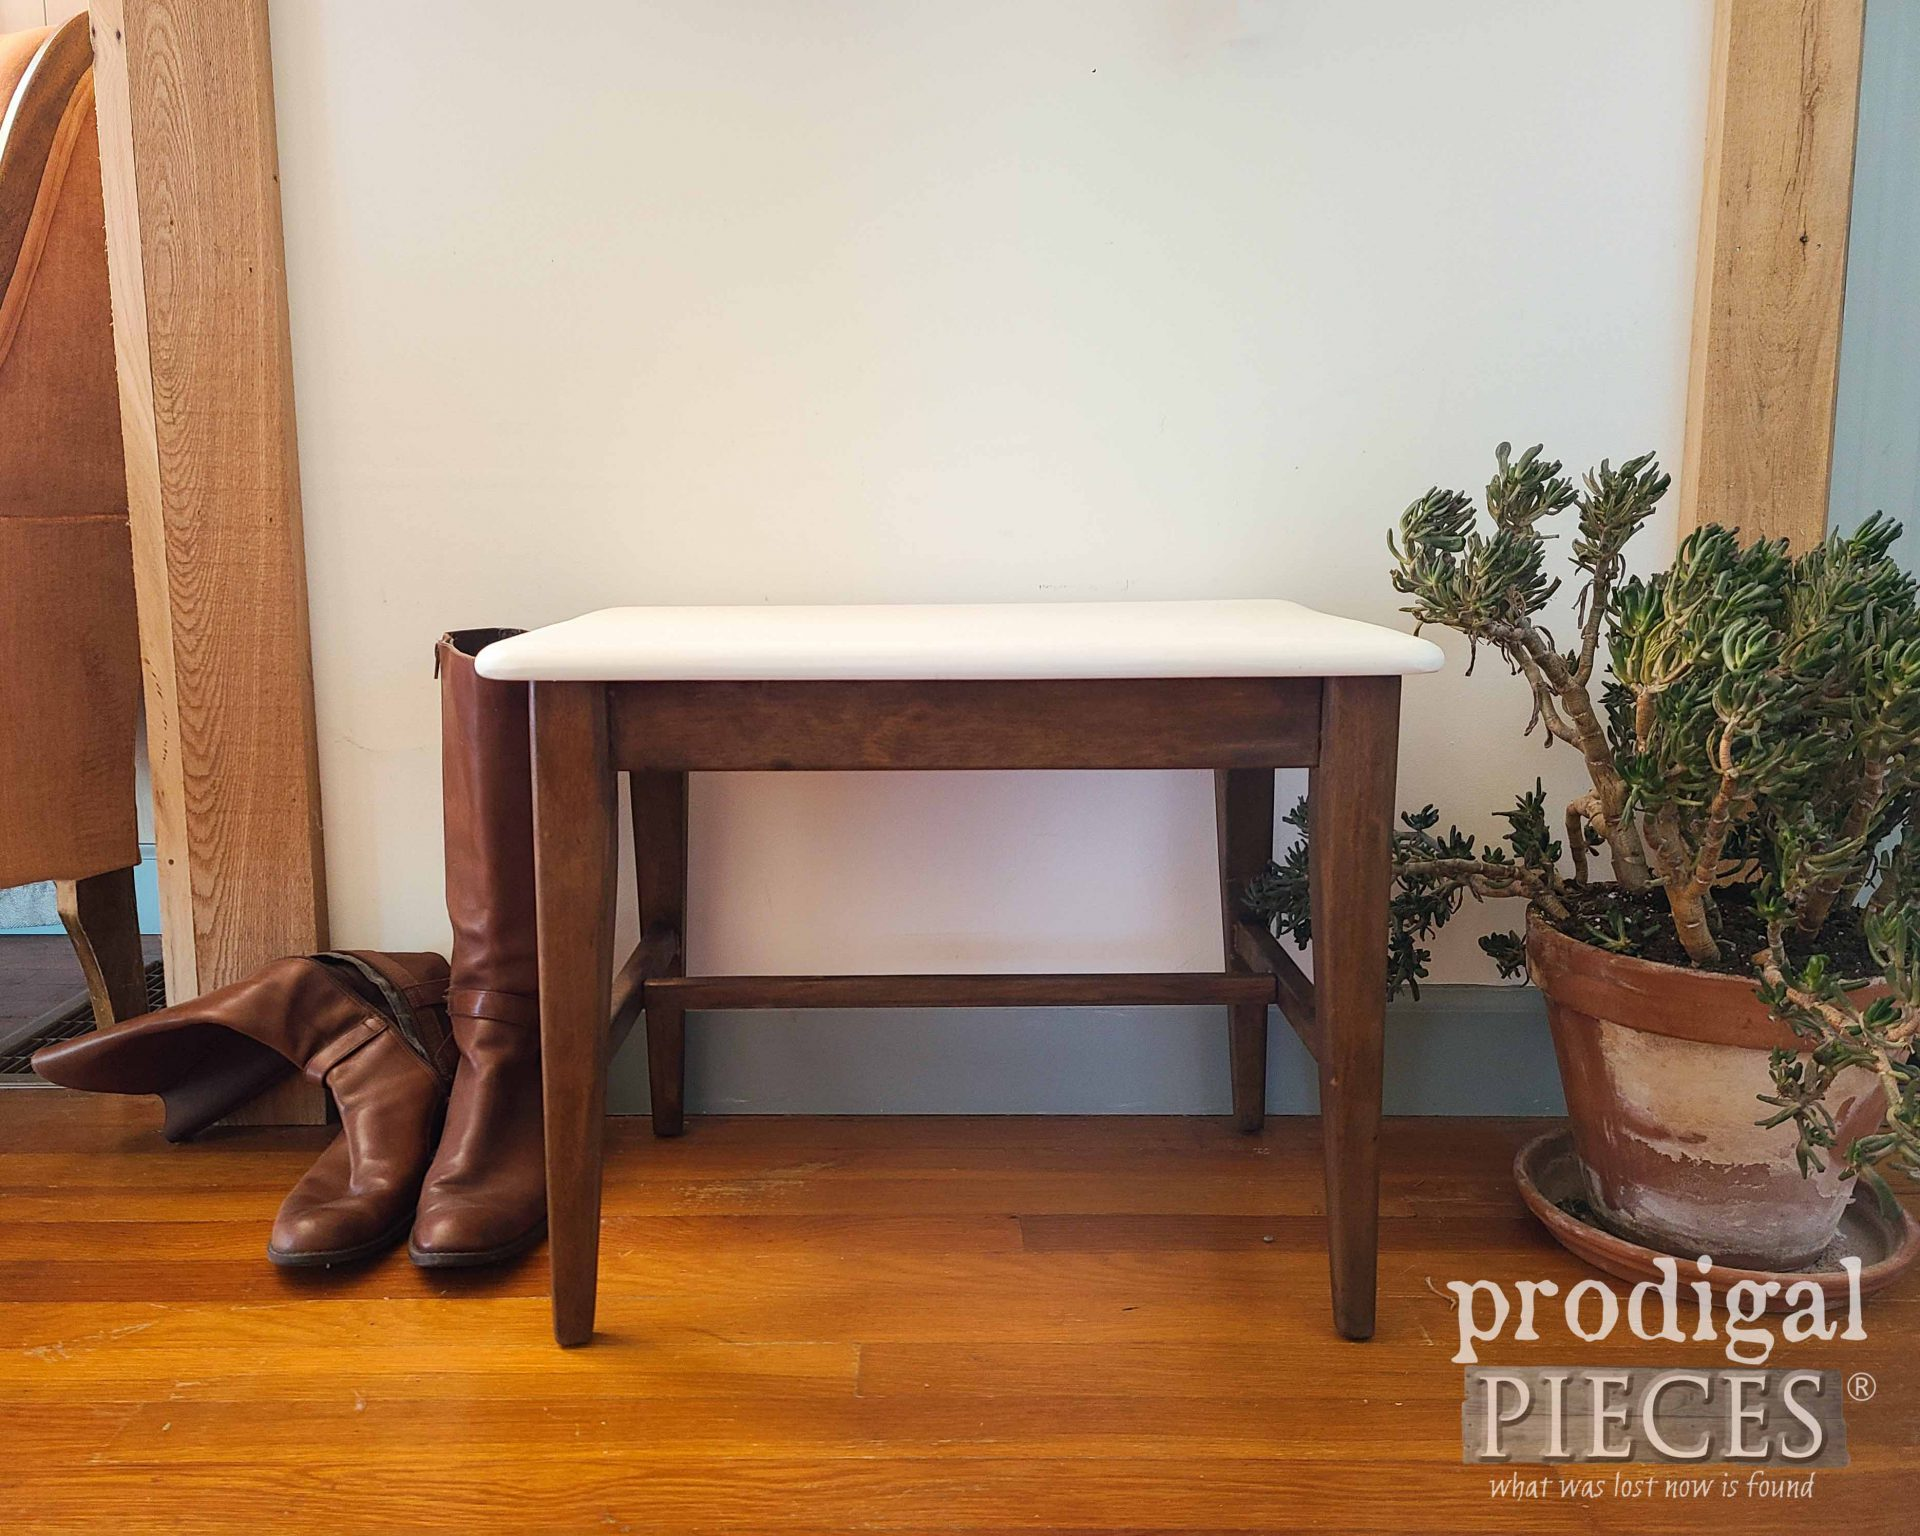 Mid Century Modern Bench Seat Makeover with Paint by Larissa of Prodigal Pieces | prodigalpieces.com #prodigalpieces #vintage #midcentury #modern #boho